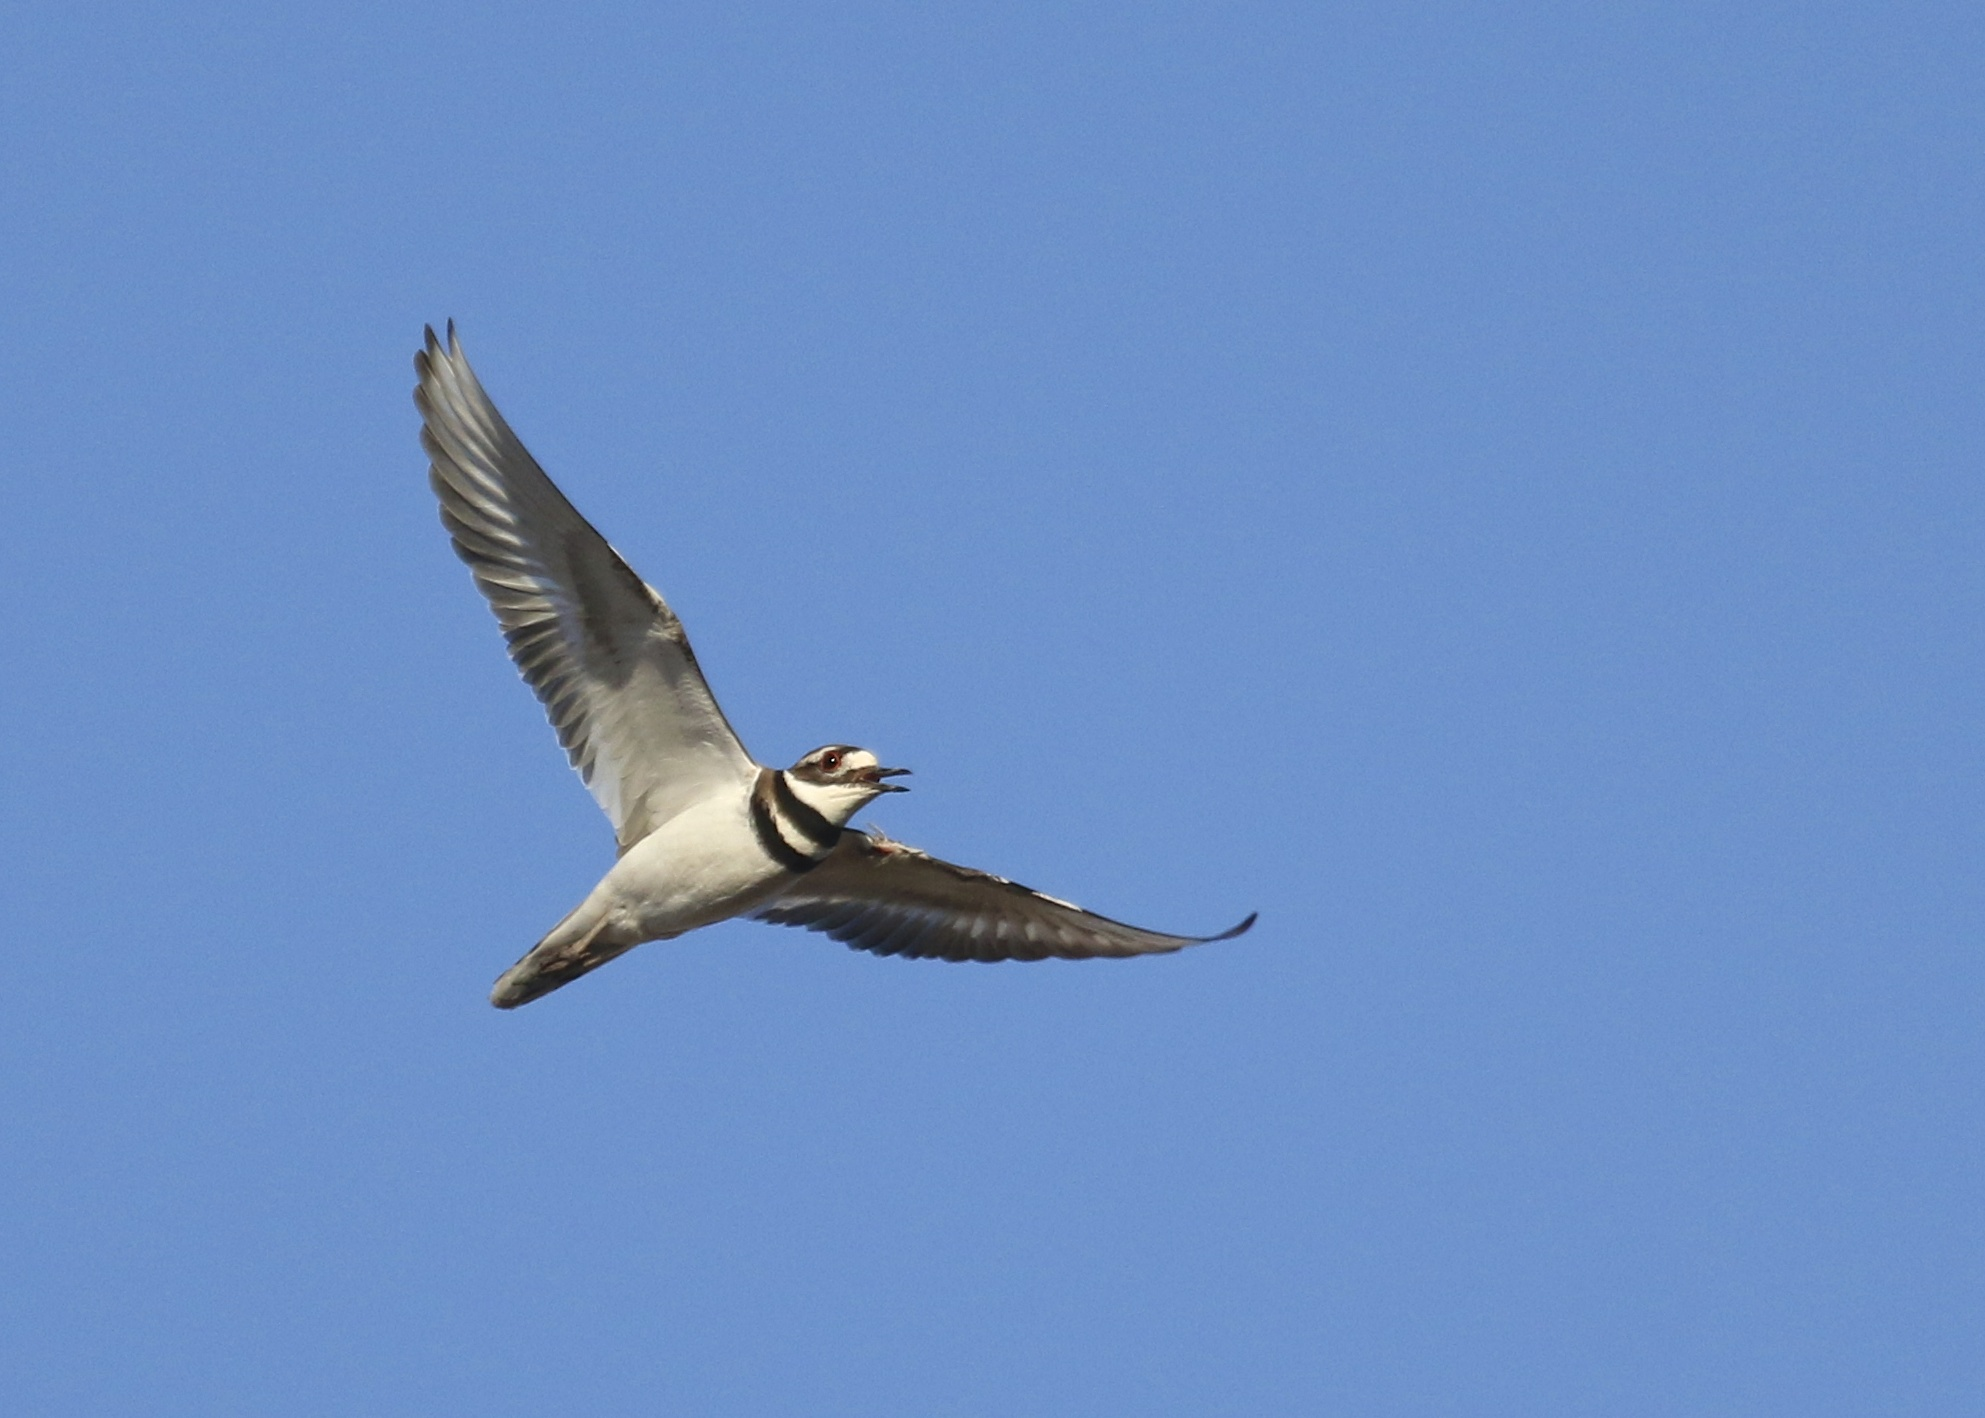 Killdeer at Wallkill River NWR, 4/2/14.